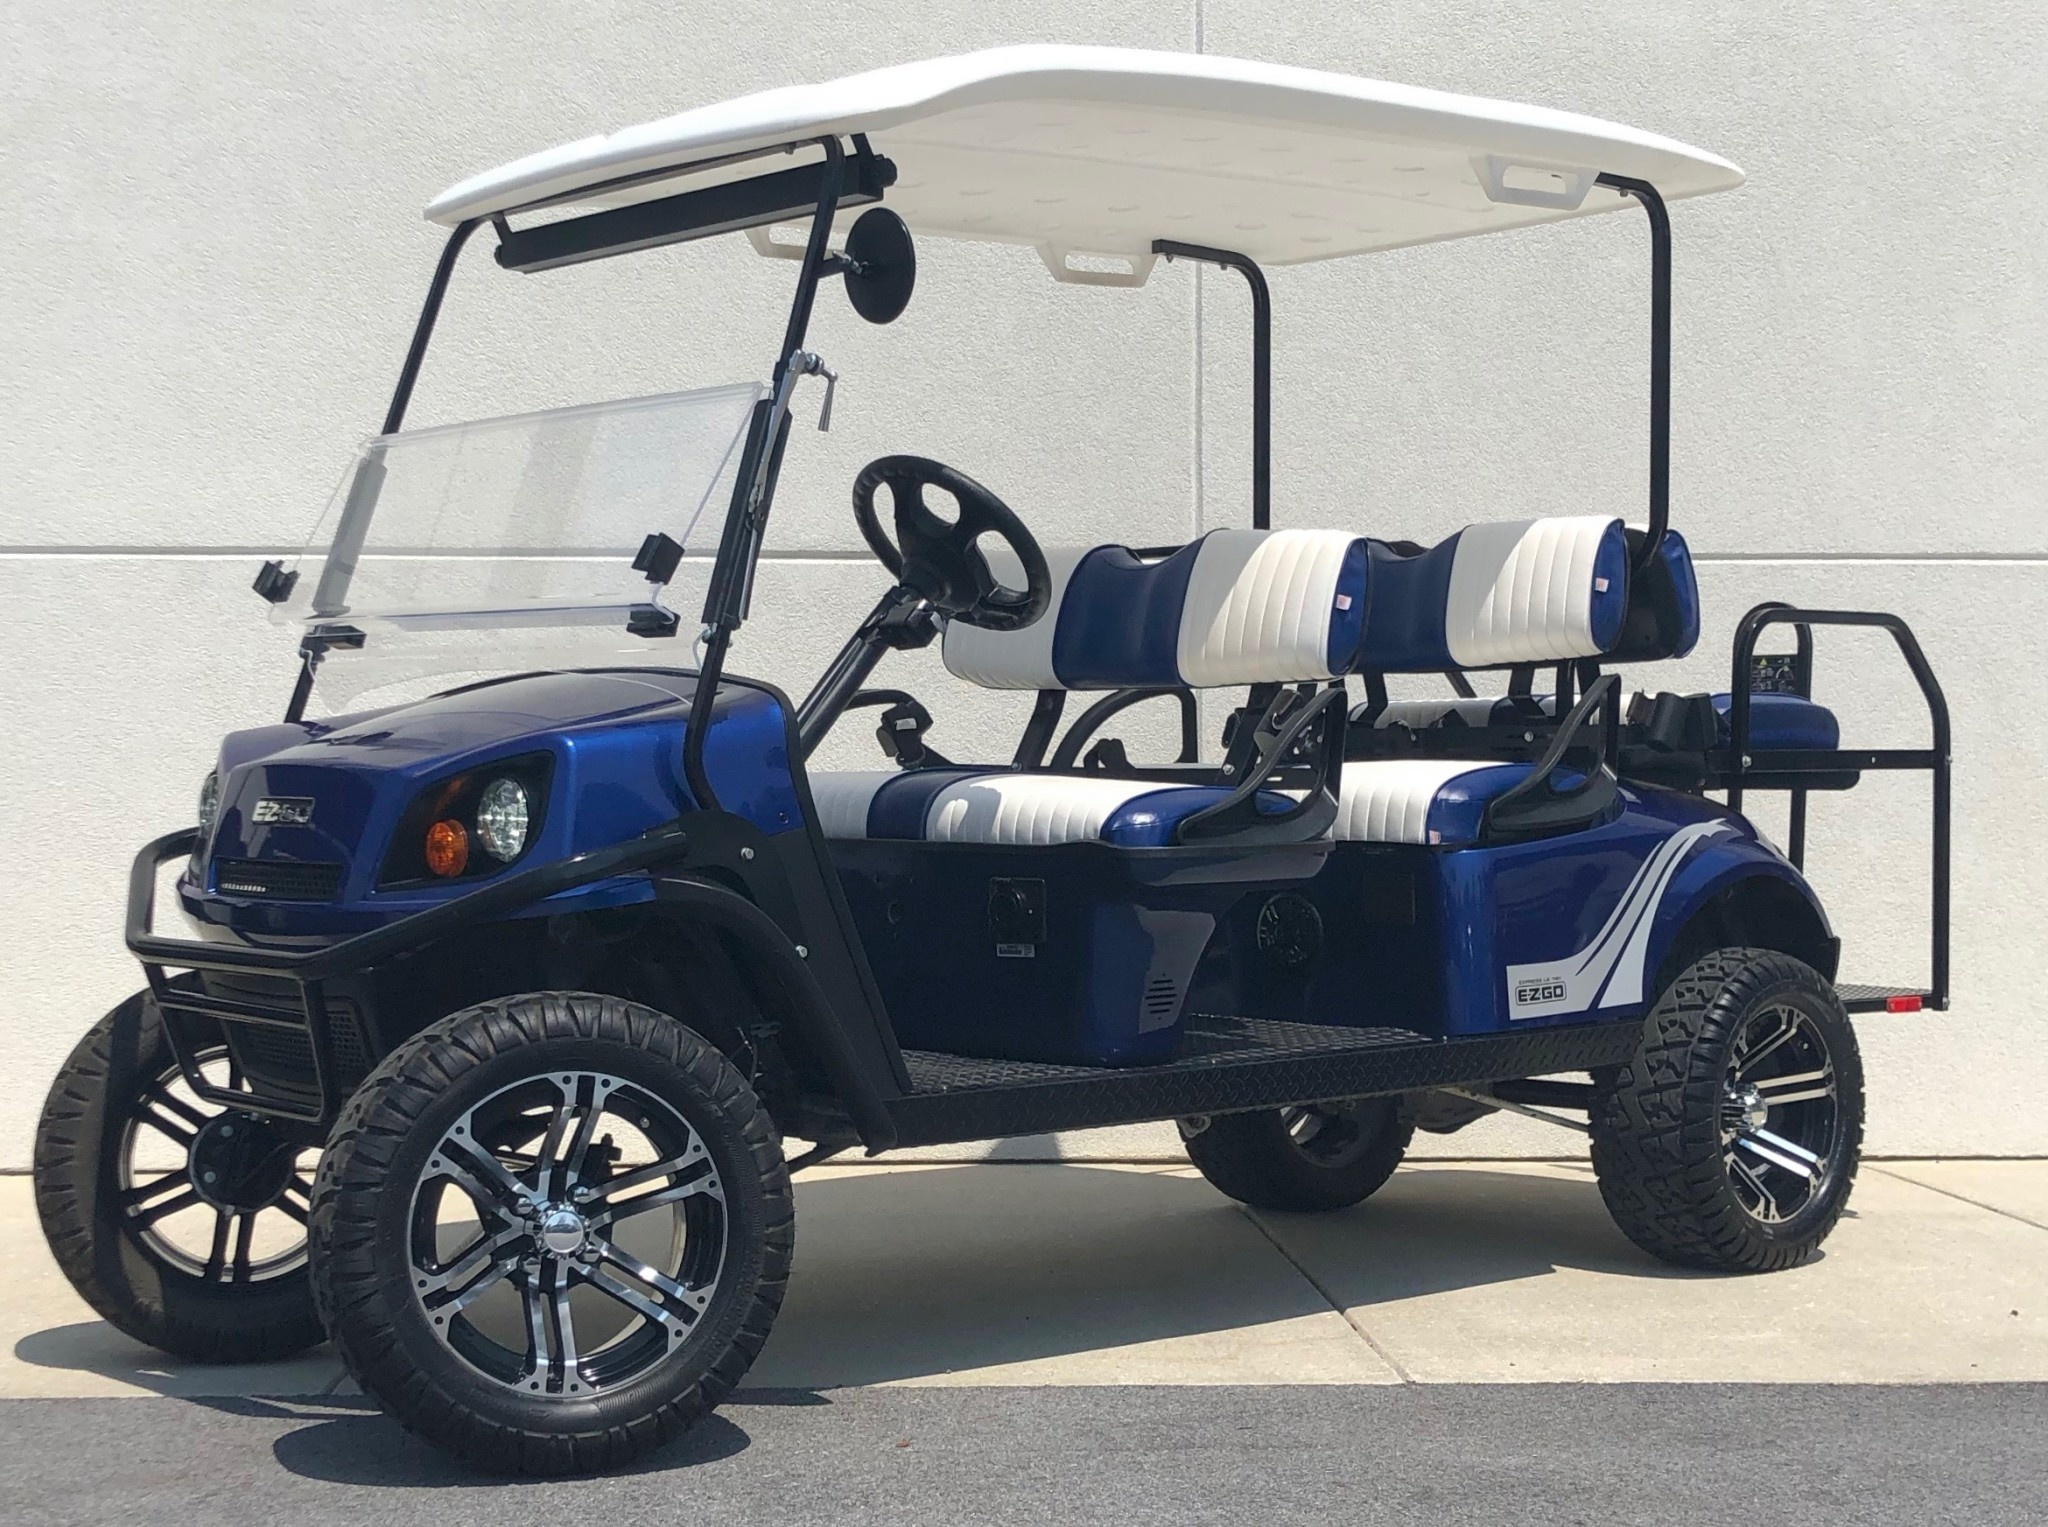 Street Legal E-Z-GO Golf Carts  Gas and Electric powered